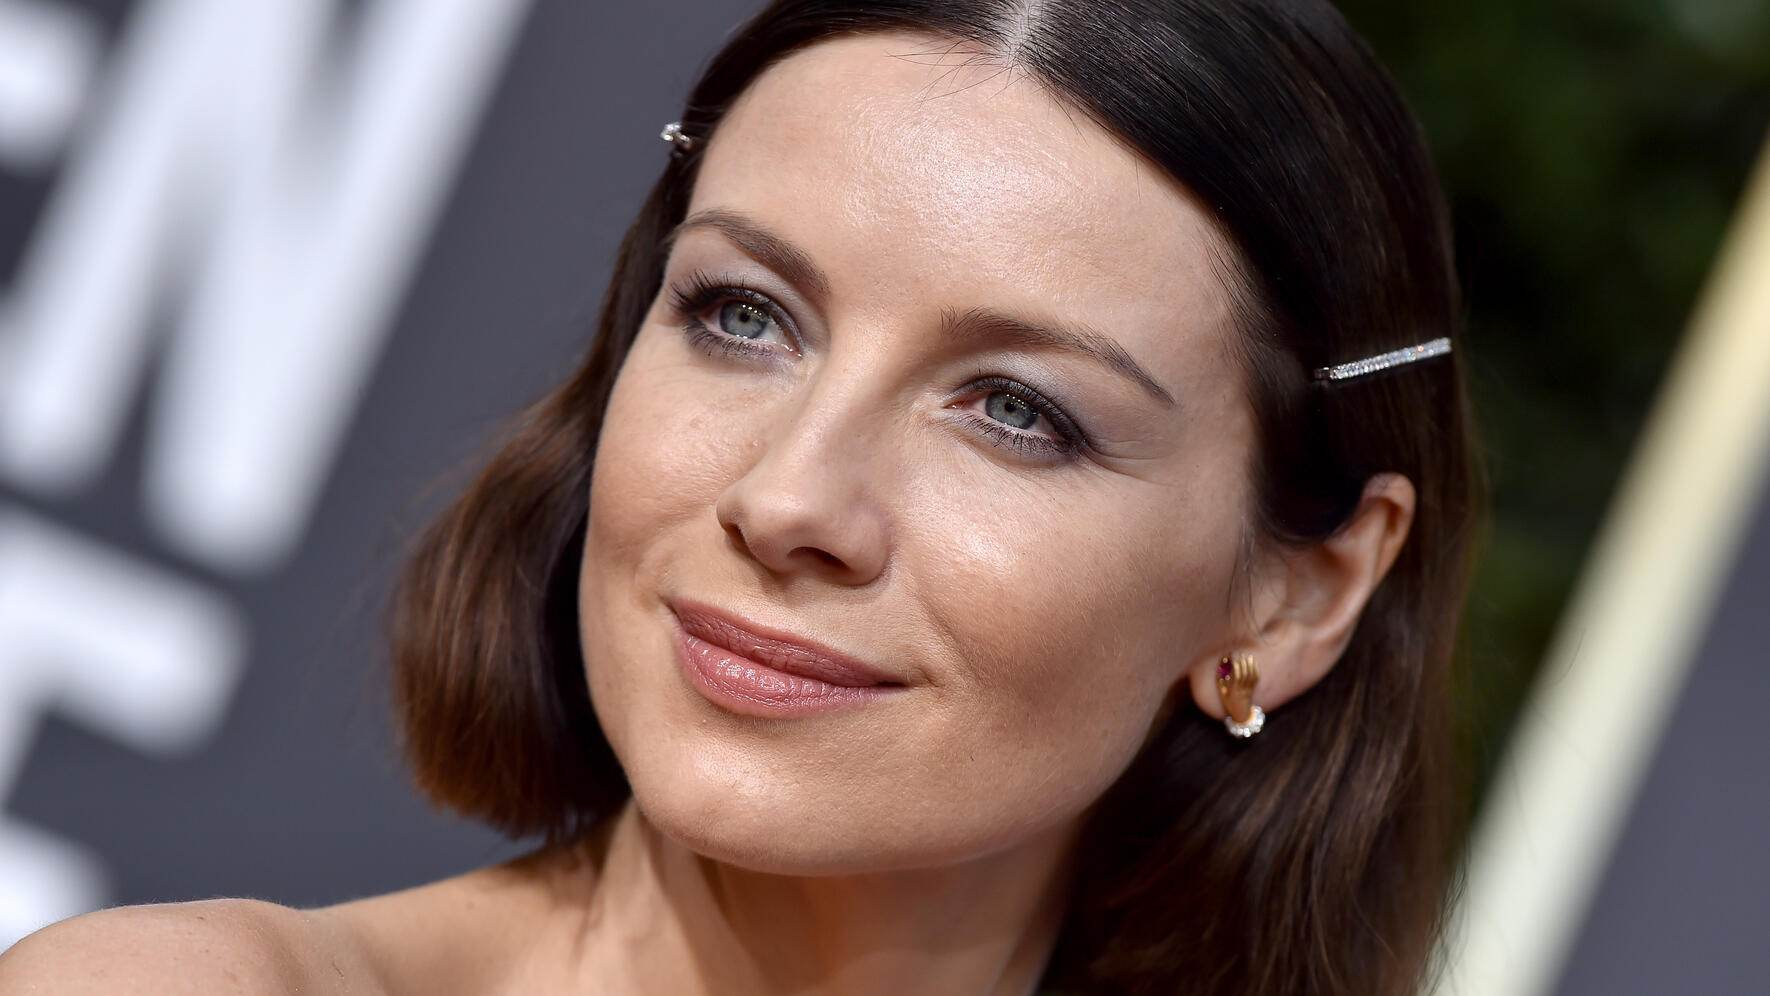 BEVERLY HILLS, CA - JANUARY 06:  Caitriona Balfe attends the 76th Annual Golden Globe Awards at The Beverly Hilton Hotel on January 6, 2019 in Beverly Hills, California.  (Photo by Axelle/Bauer-Griffin/FilmMagic)